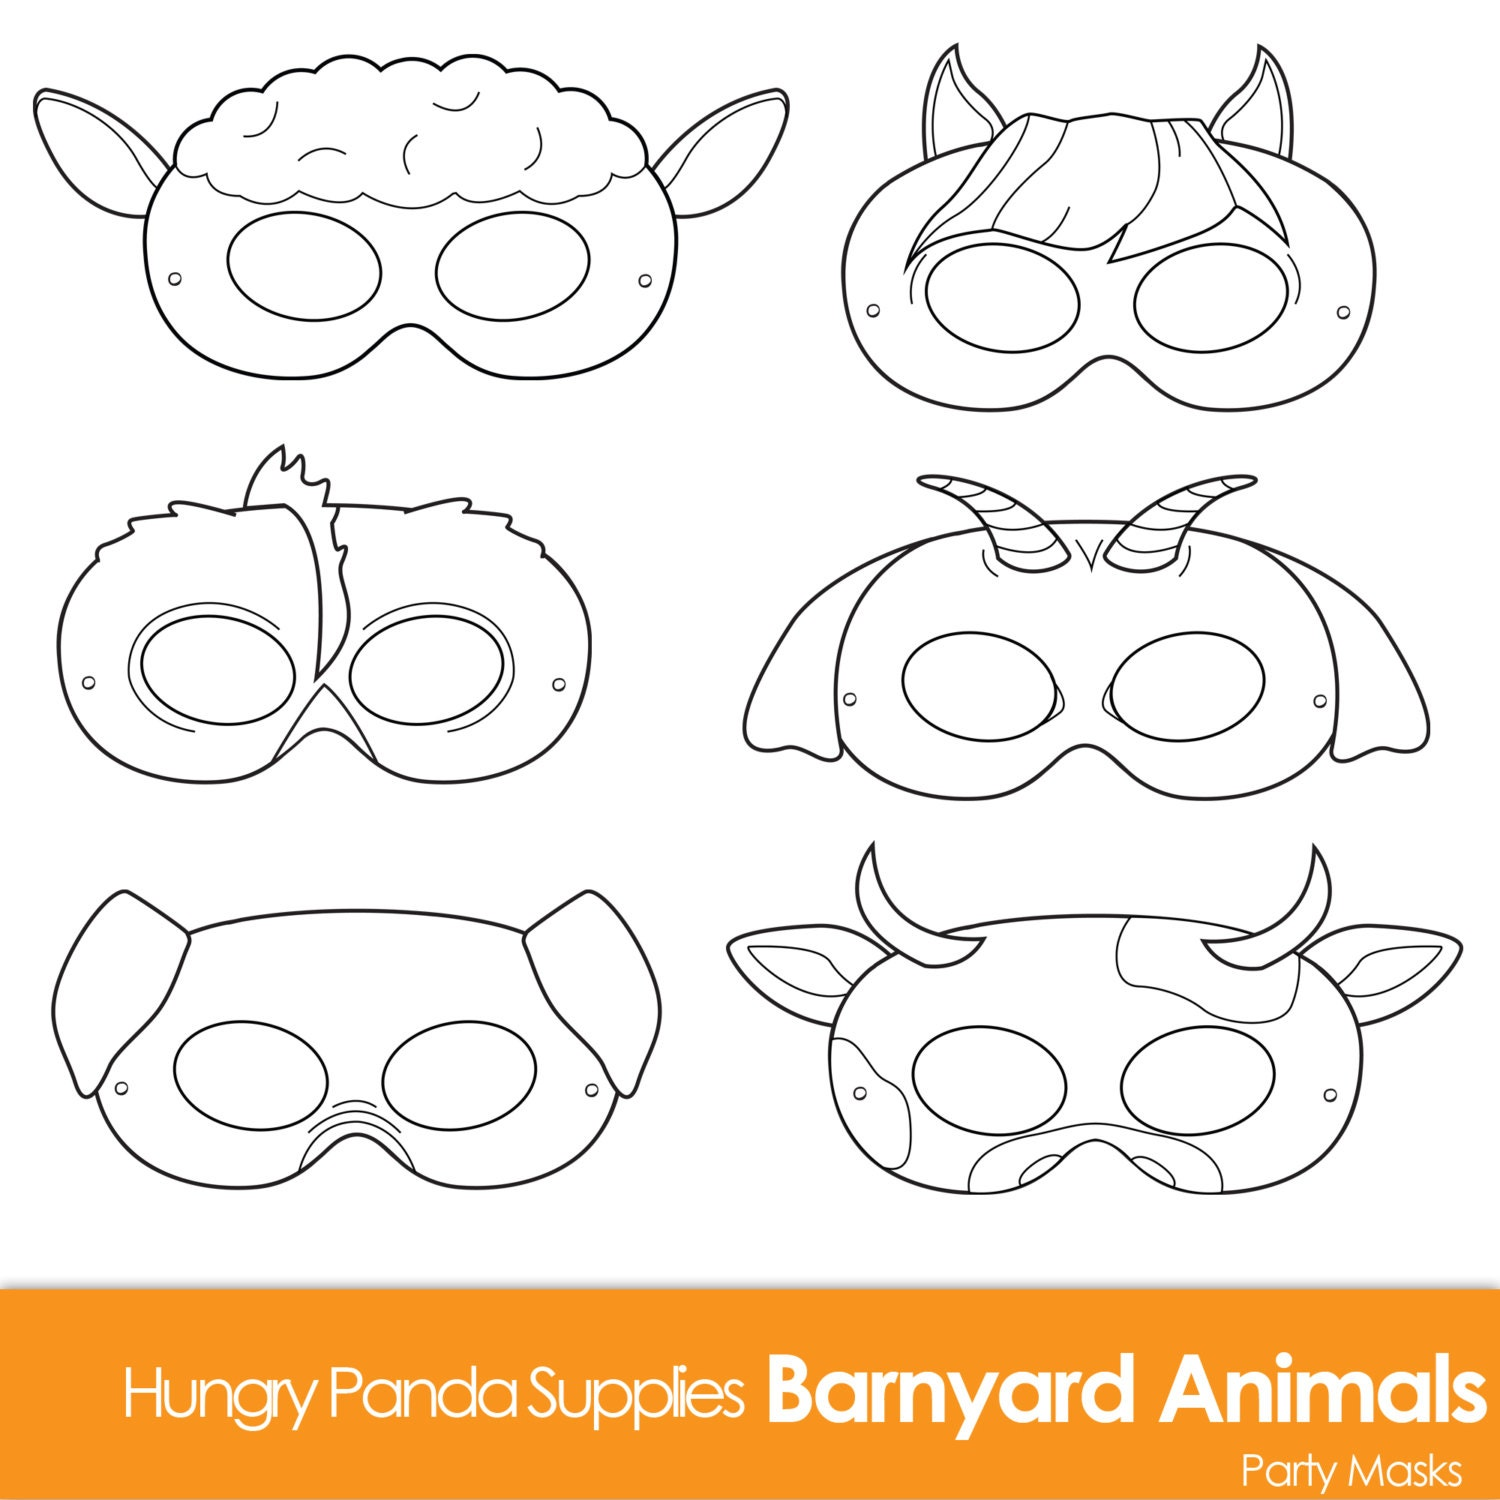 Barnyard Animals Printable Coloring Masks farm animal mask